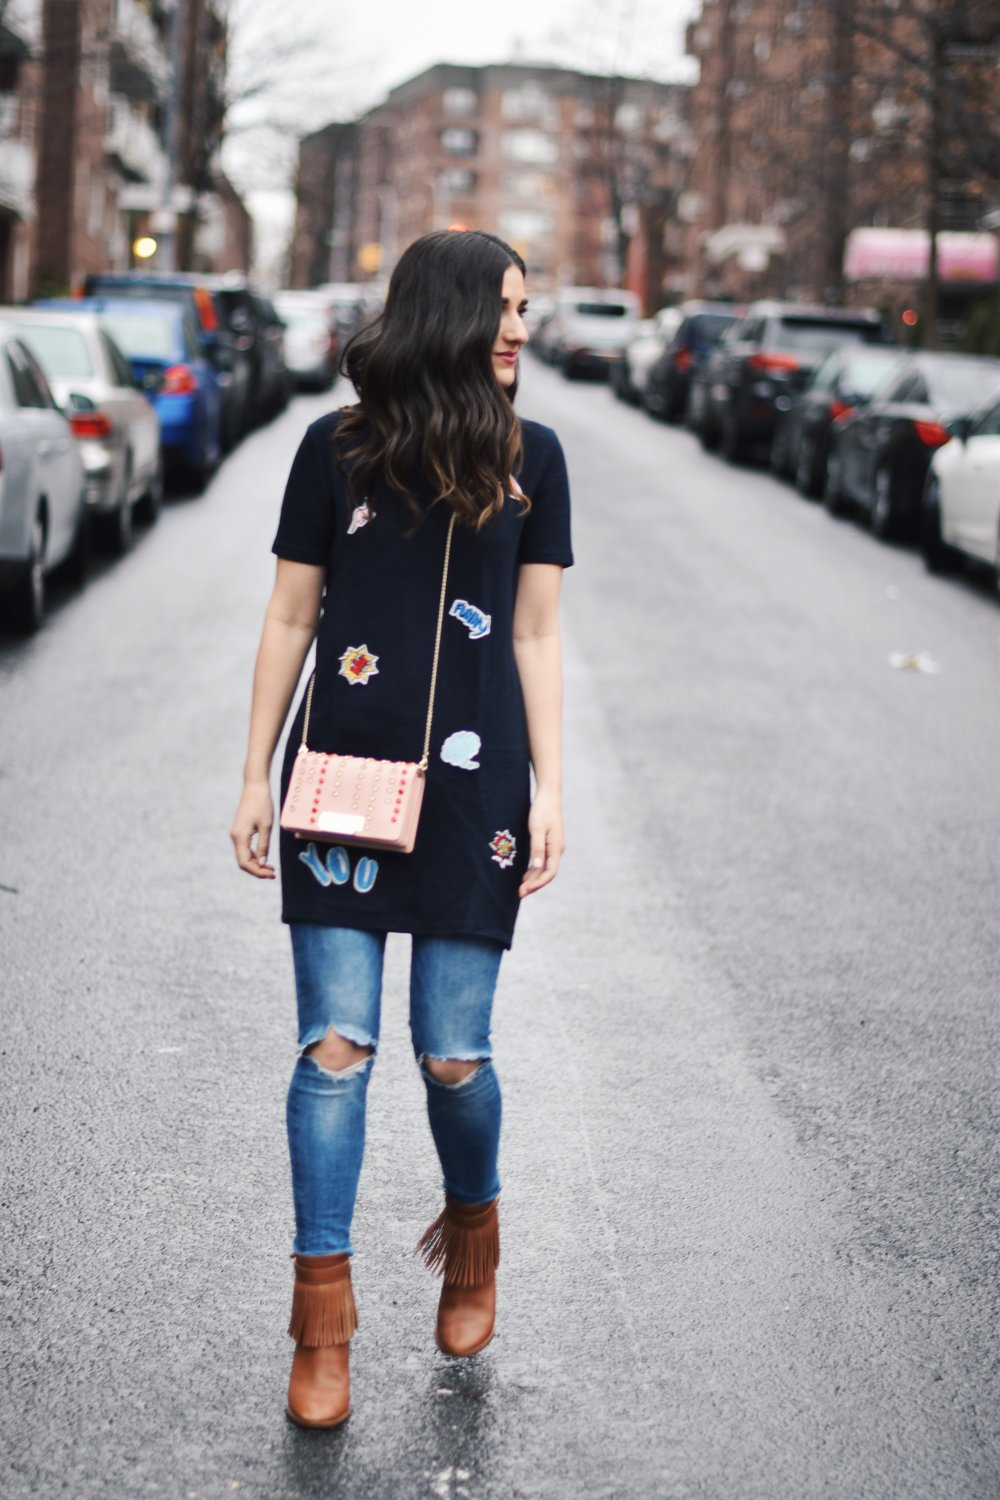 5 Habits You Should Adopt to Become A Better Worker Patch Dress Ripped Jeans Esther Santer Fashion Blog NYC Street Style Blogger Outfit OOTD Trendy Zac Posen Swarovski Bag Sale Online Shopping Zara Buy Jeans Over Dress Styling Nordstrom Fringe Booties.jpg